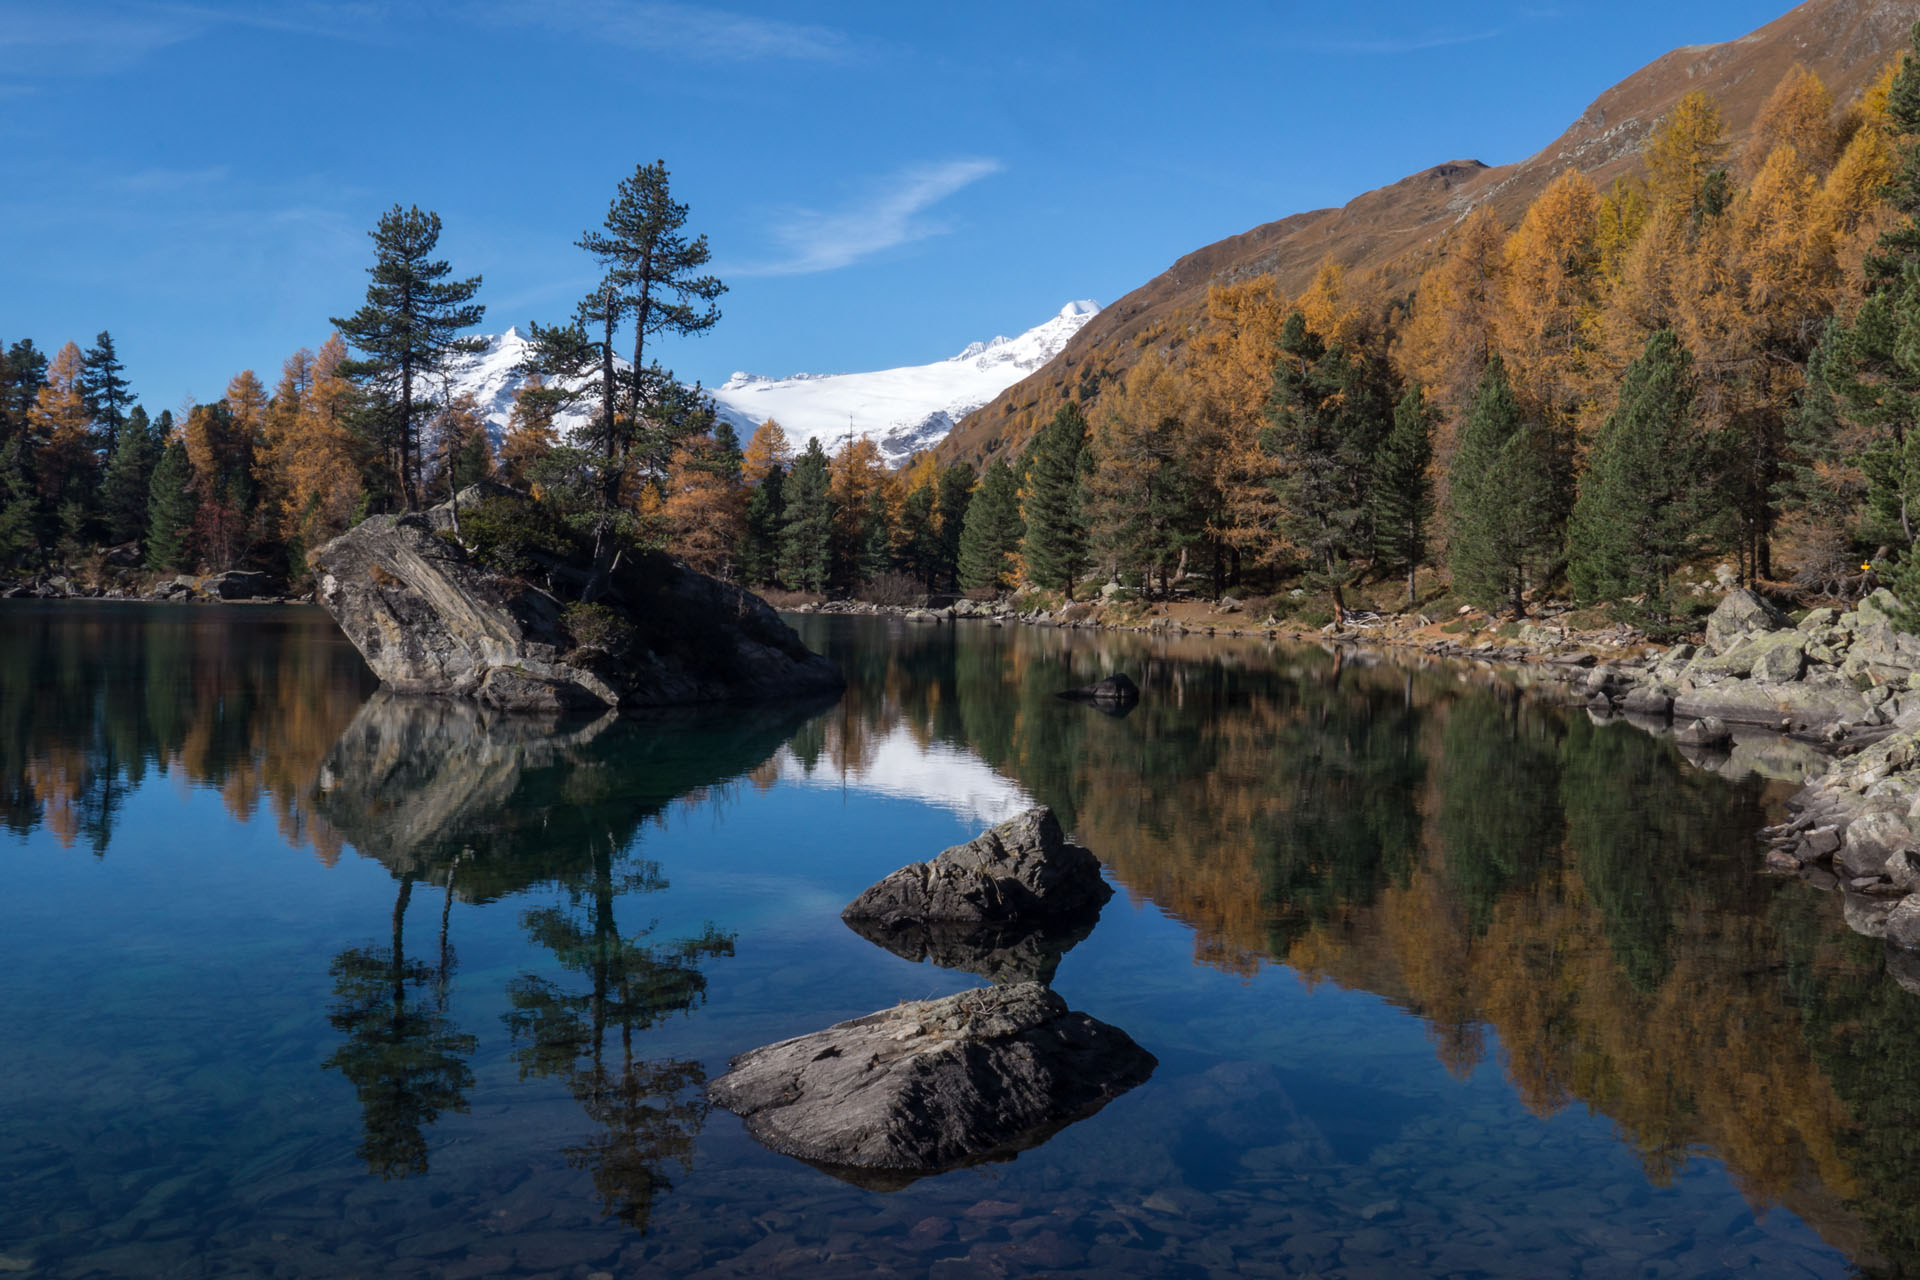 Lago Saoseo in autumn